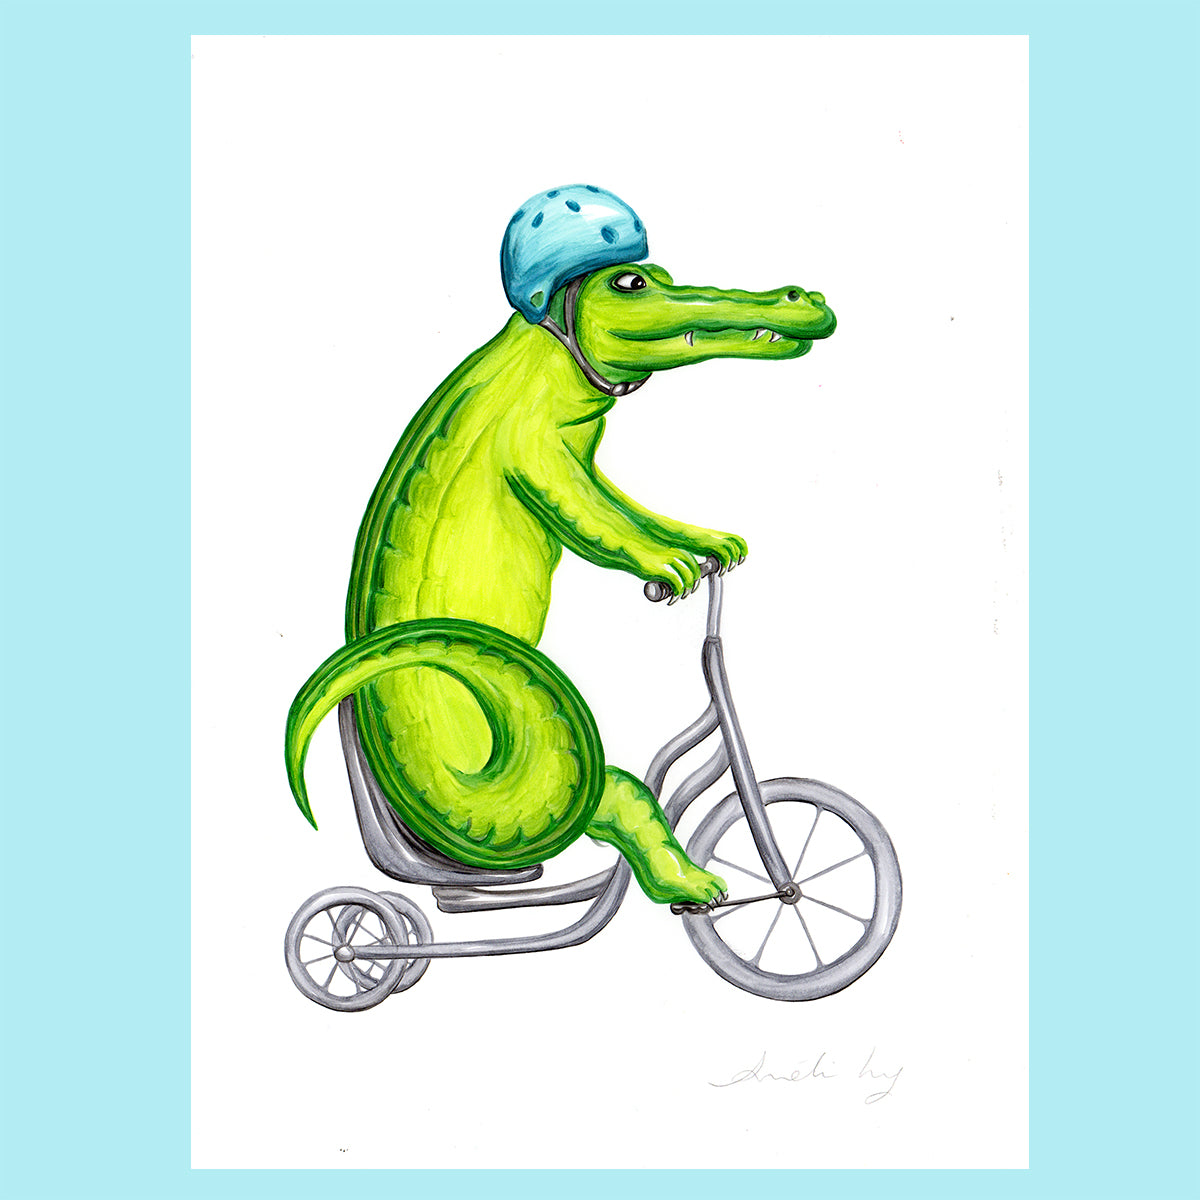 Crocodile on a bike - Original Artwork, Crocodile illustration, Amelie Legault